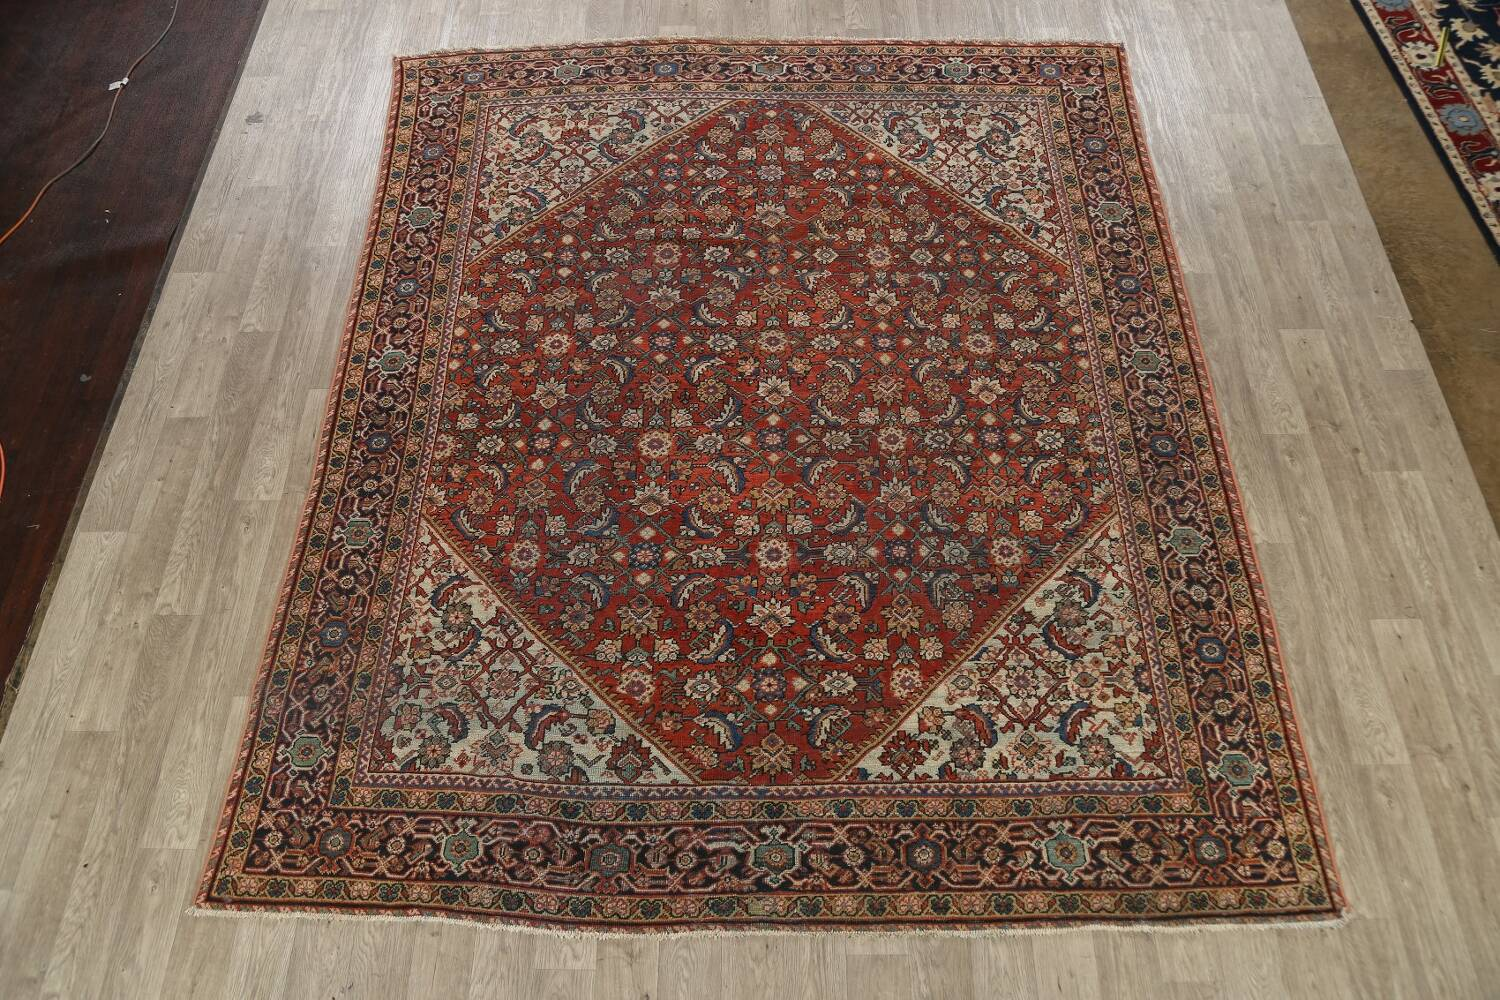 Pre-1900 Vegetable Dye Sultanabad Persian Area Rug 9x11 image 2